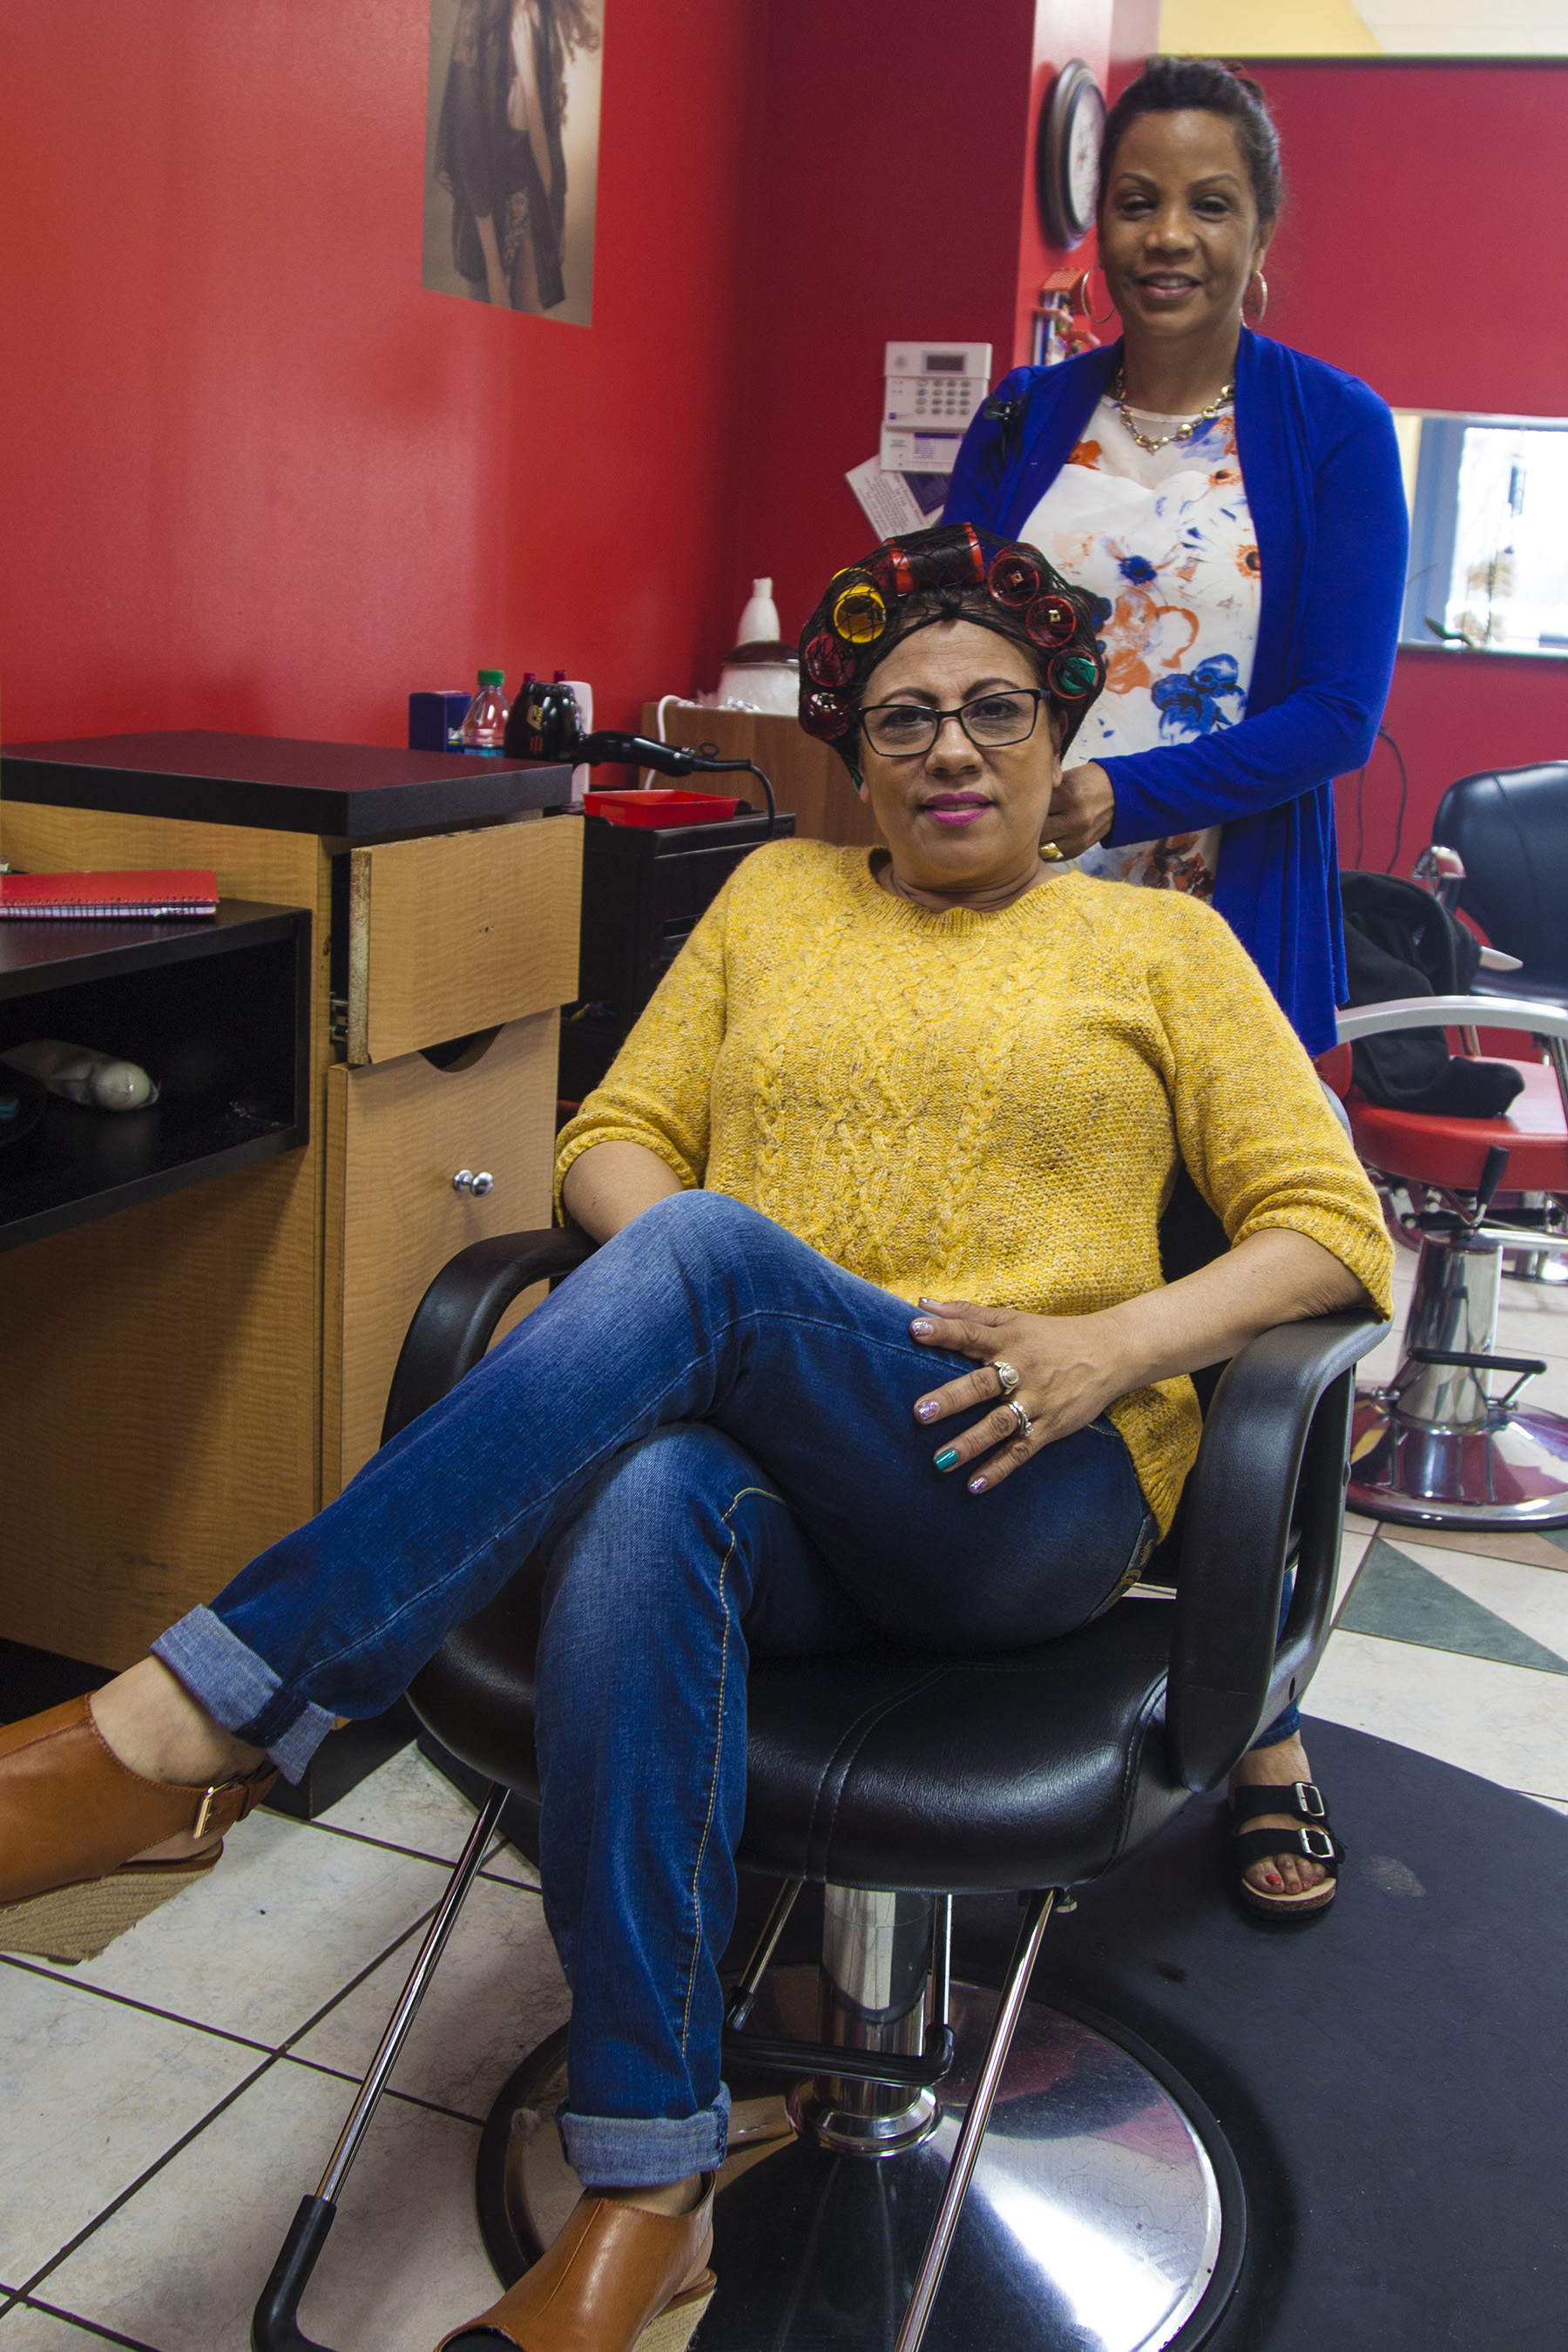 Saturday morning at a Dominican salon in Baltimore. Photo by Alejandro Orengo  Full Caption: https://newsdesk.si.edu/photos/gateways-portales-4